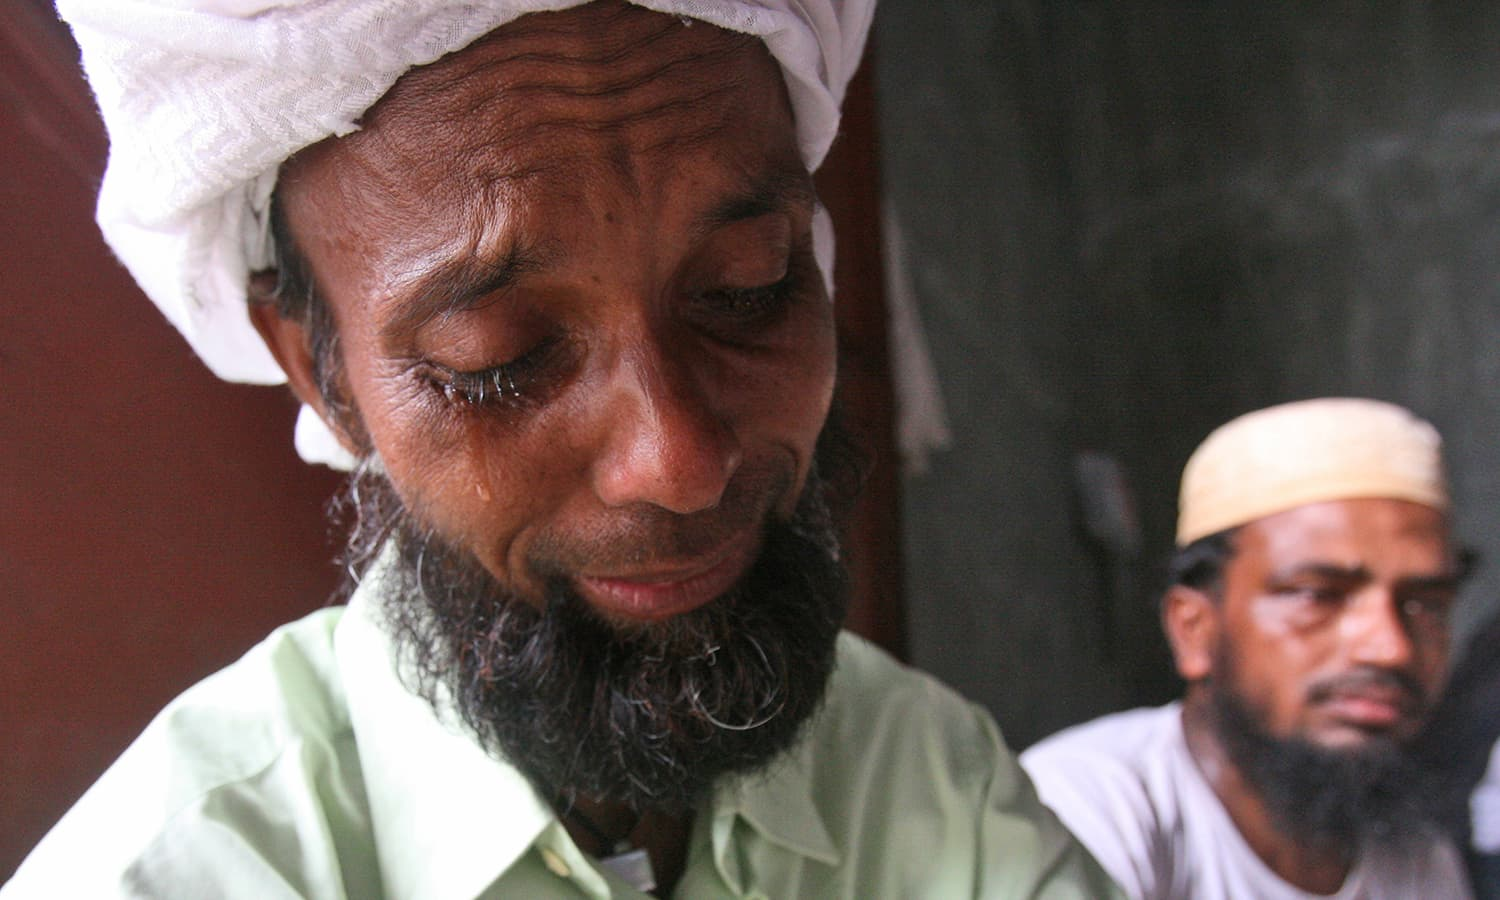 A Bangladeshi migrant weeps during the visit of Bangladesh's Ambassador to Indonesia Mohammad Nazmul Quaunine at a temporary shelter in Langsa, Aceh province, Indonesia.